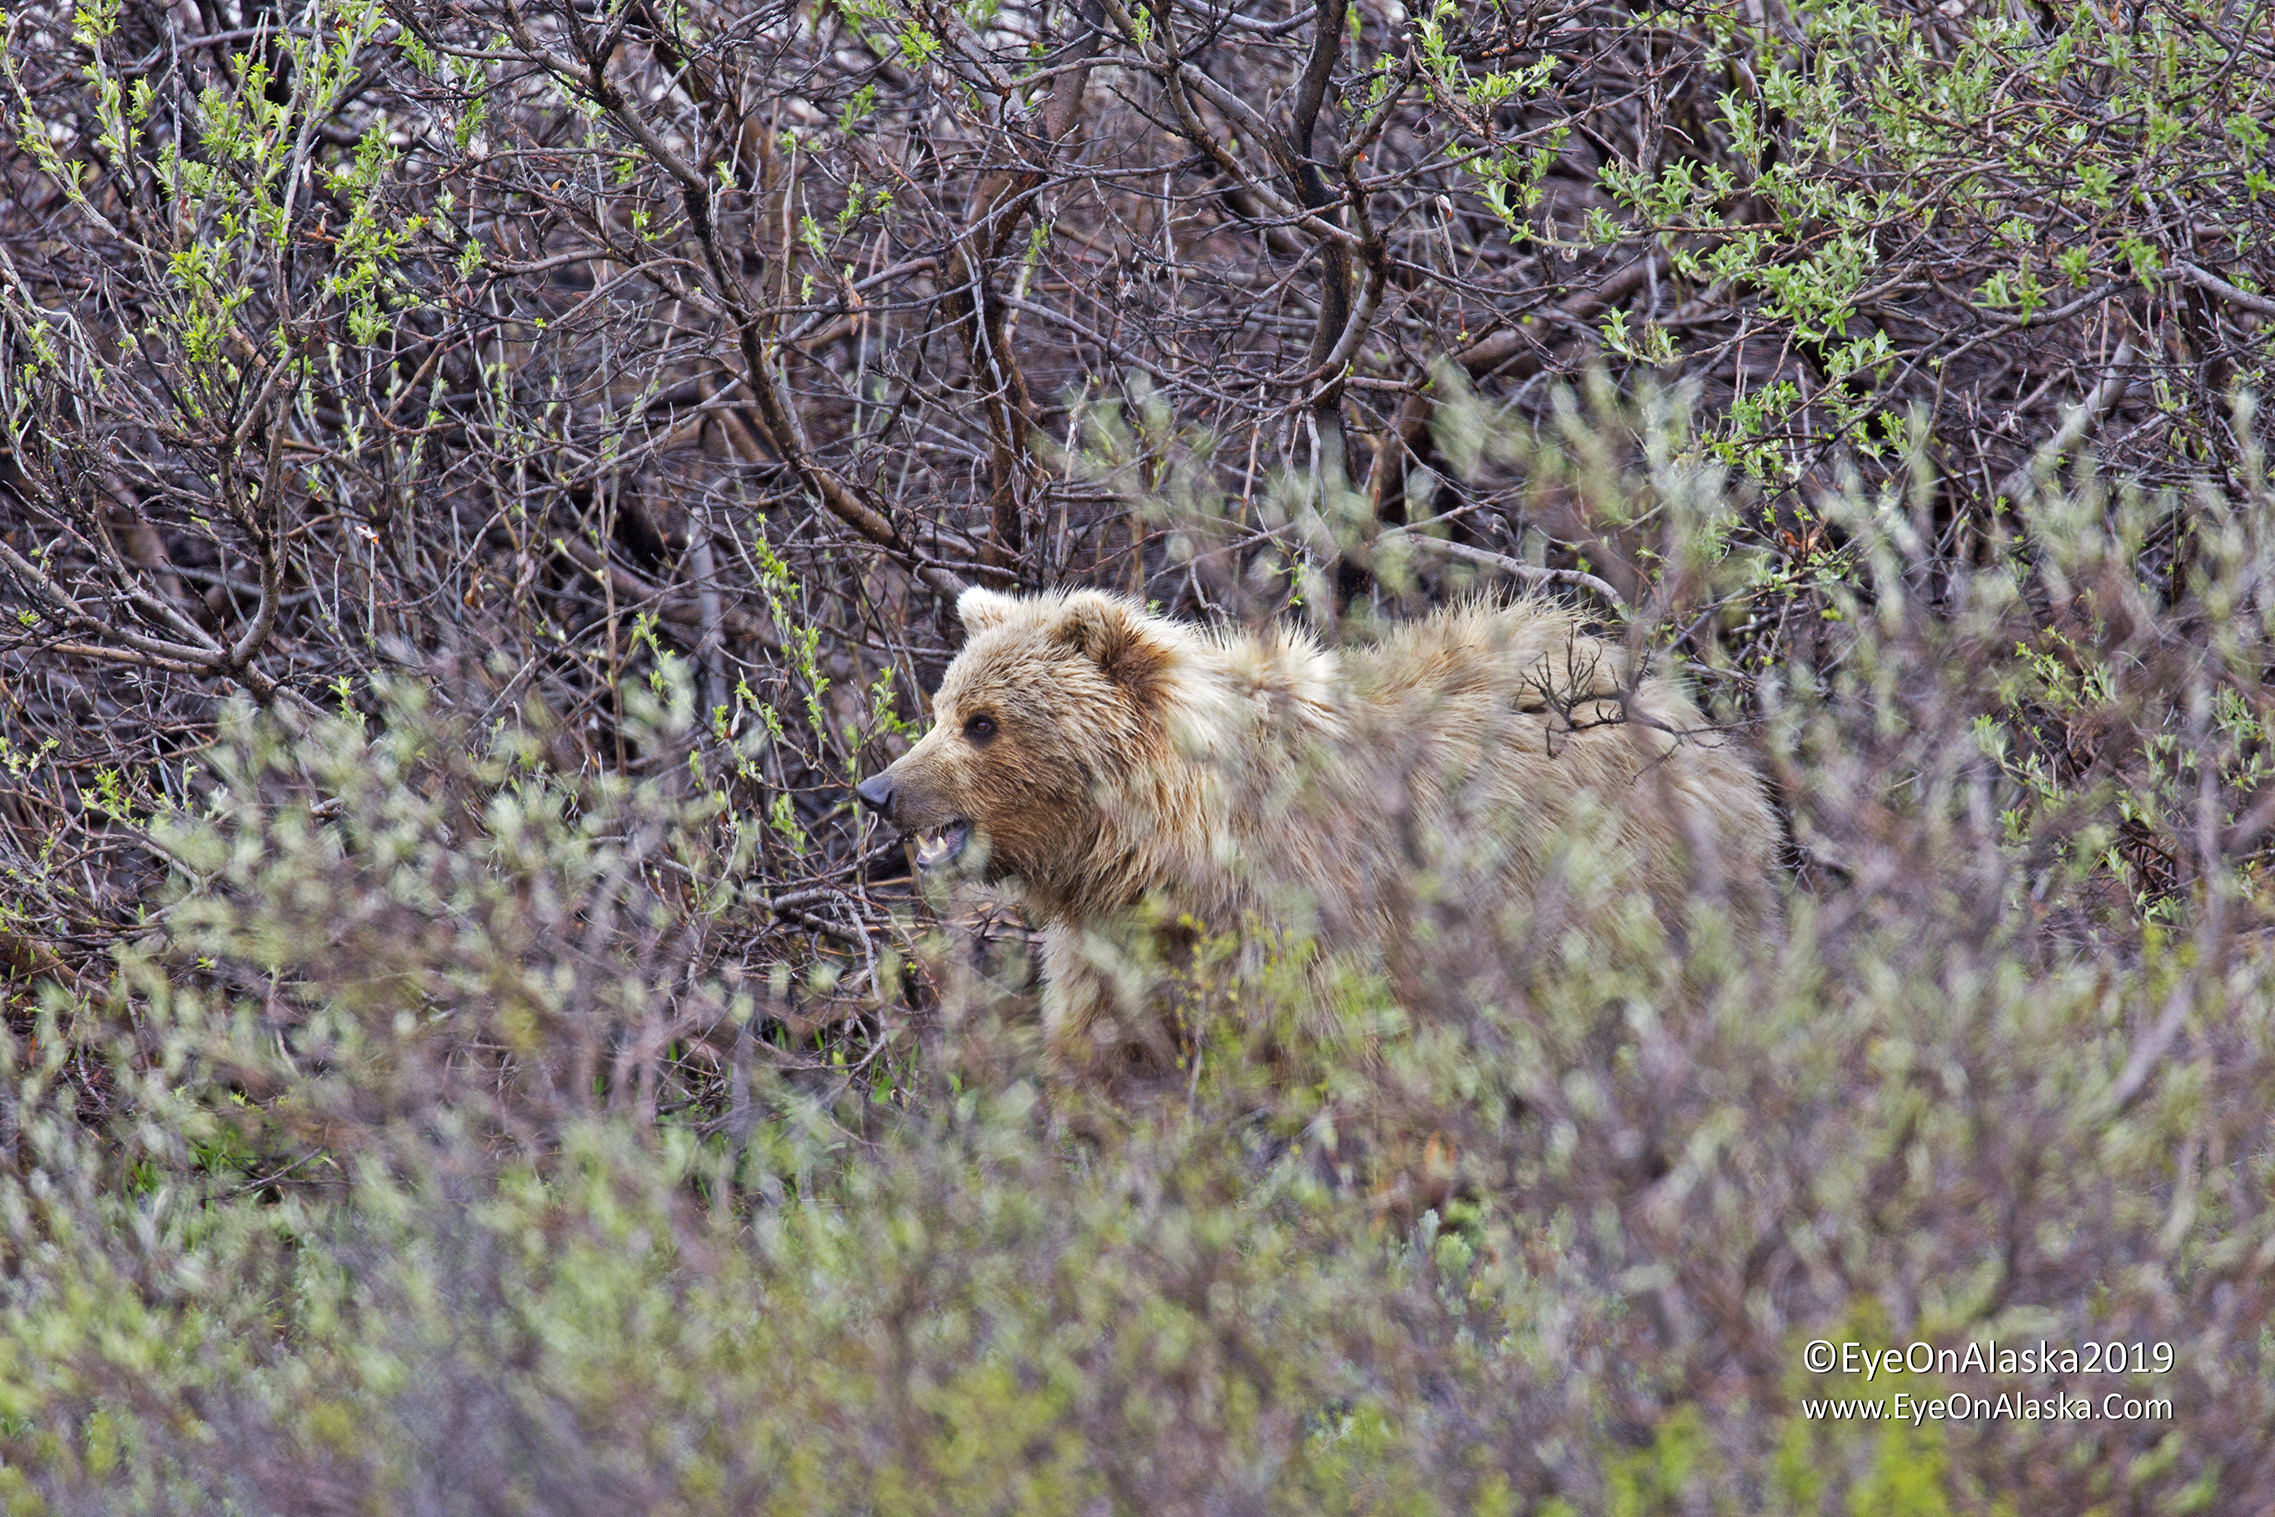 As we got even with him, the bear moved back into the bushes a bit, but we still got a great view of him.